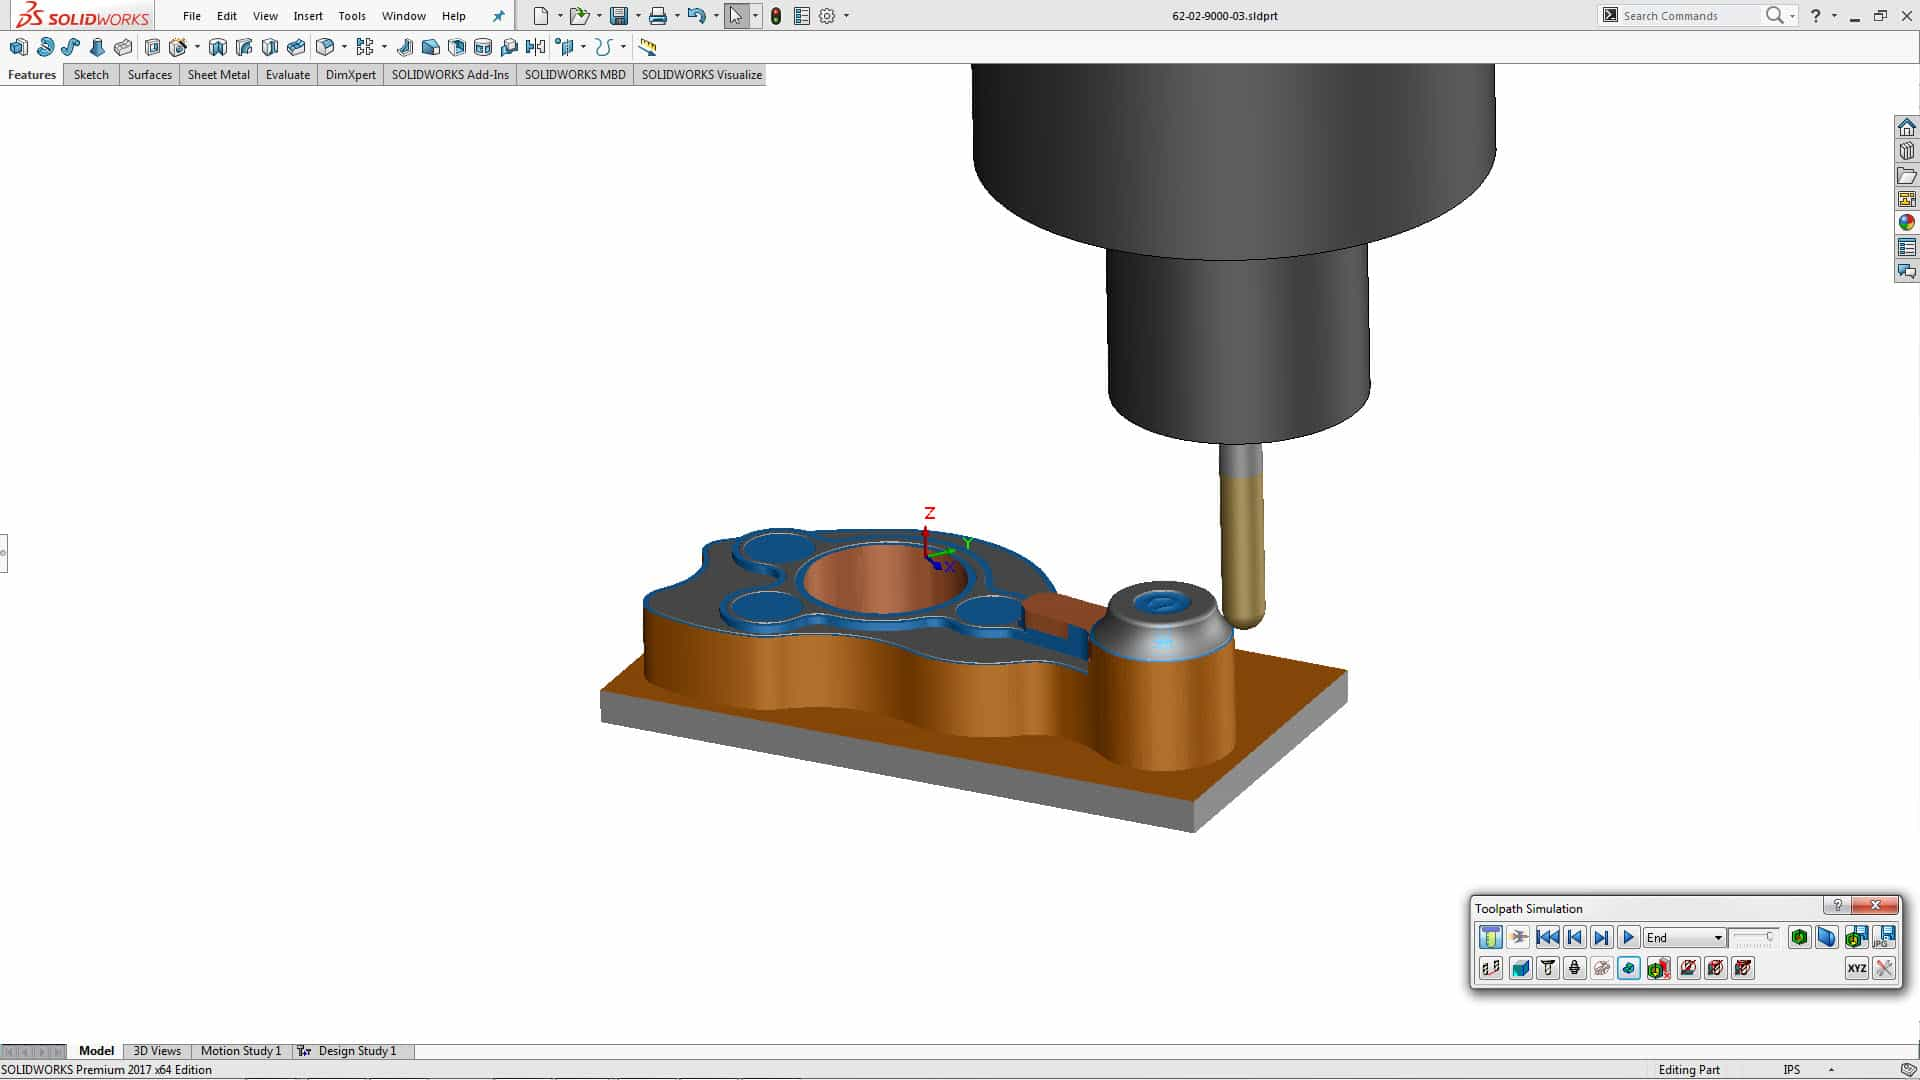 Bechtle Experience Day: SolidWorks, Makerszene, Ecosysteme